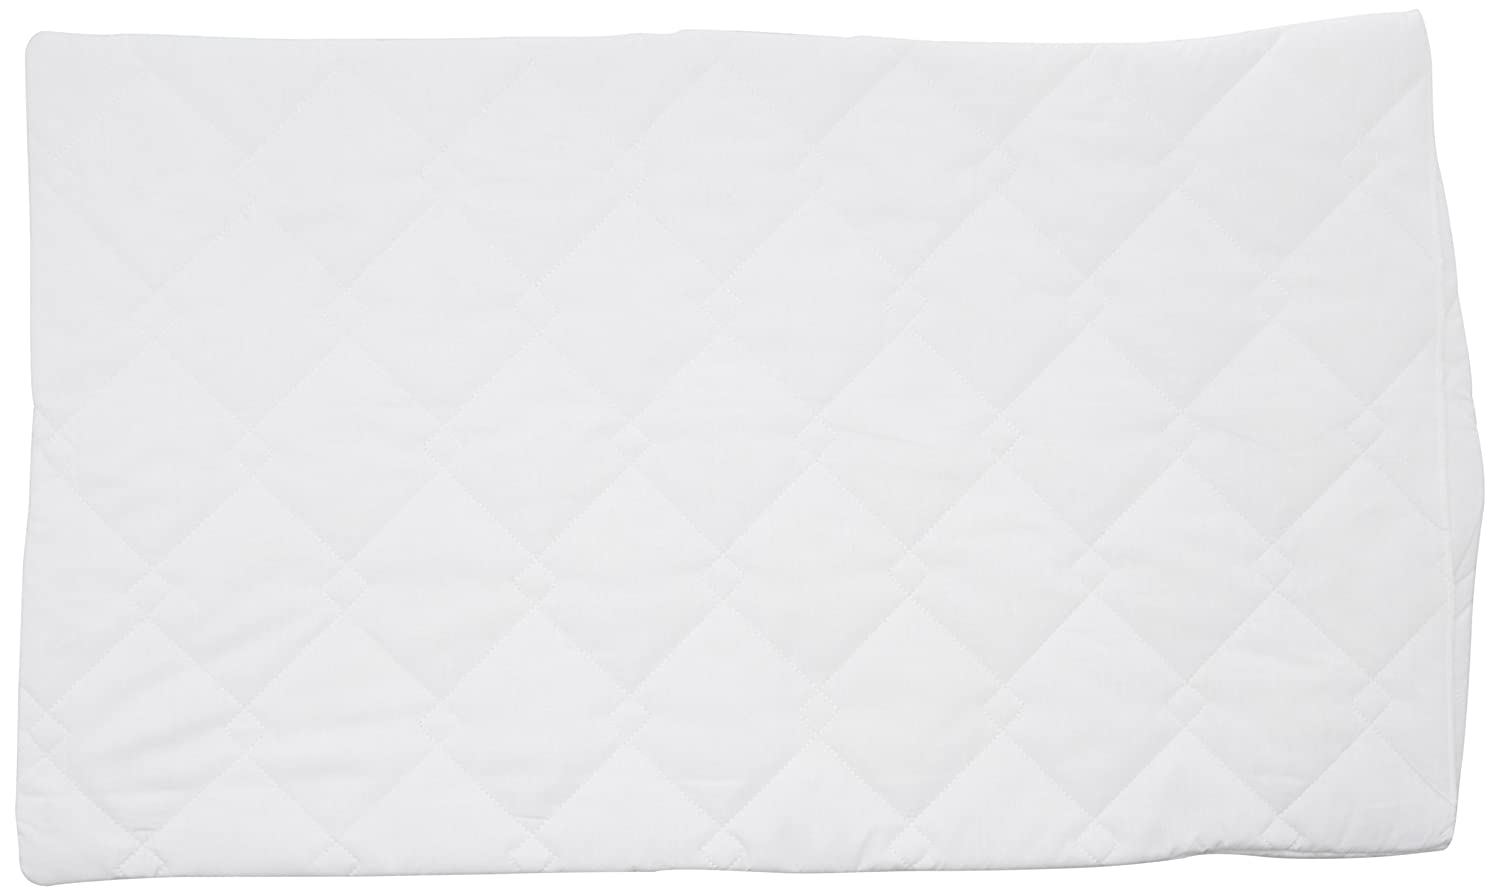 DreamEasy Quilted Pillow Protector Pair, Polyester-Cotton, Multi-Colour, 74 x 48 x 5 cm PIL003